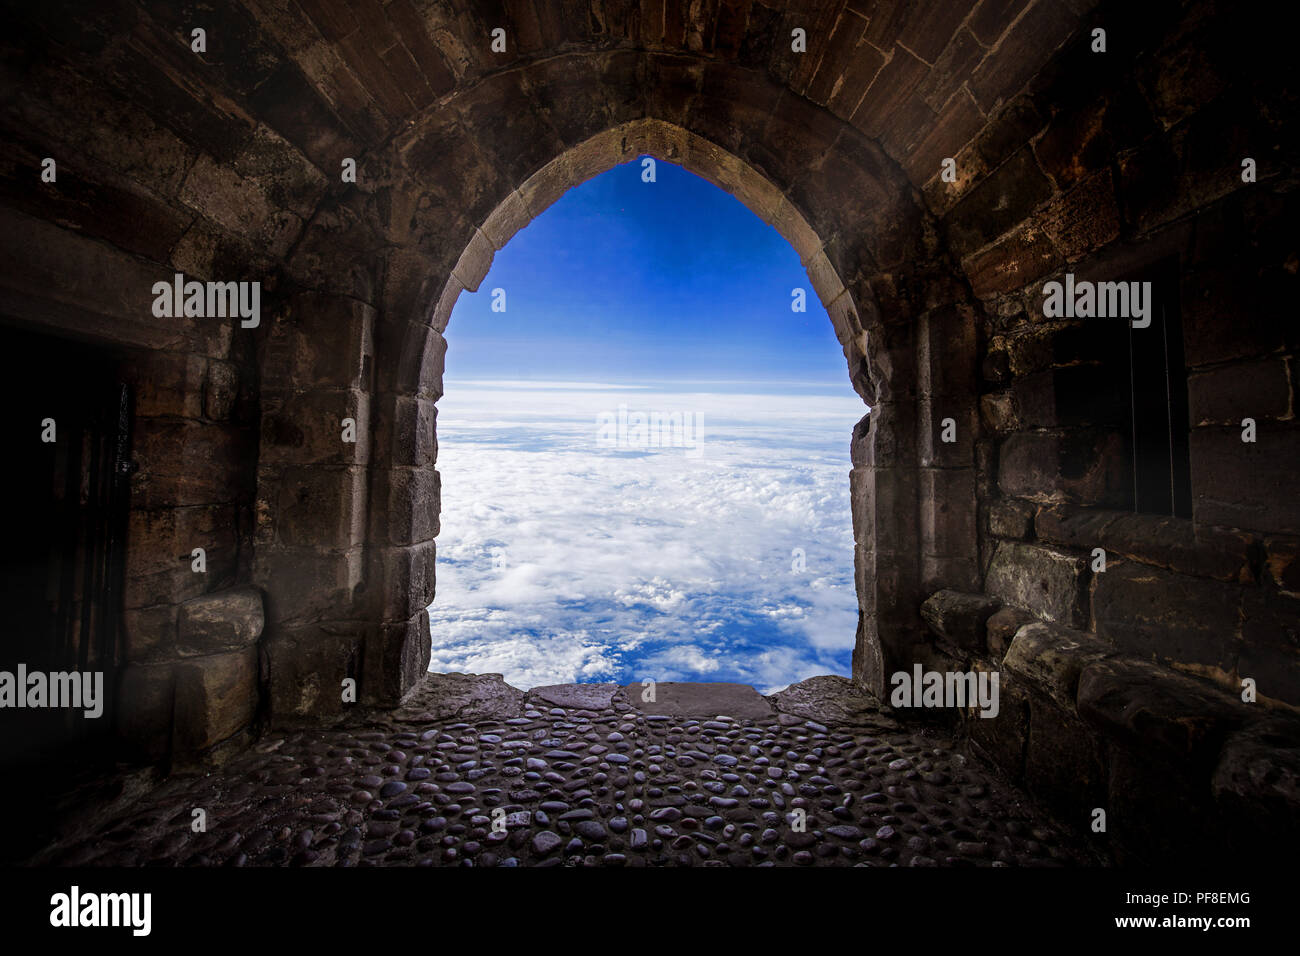 The door open to the world from old place or cave.Let us explore the world, Taking risk, open your vision, get out of cormfort zone concepts. Stock Ph Stock Photo